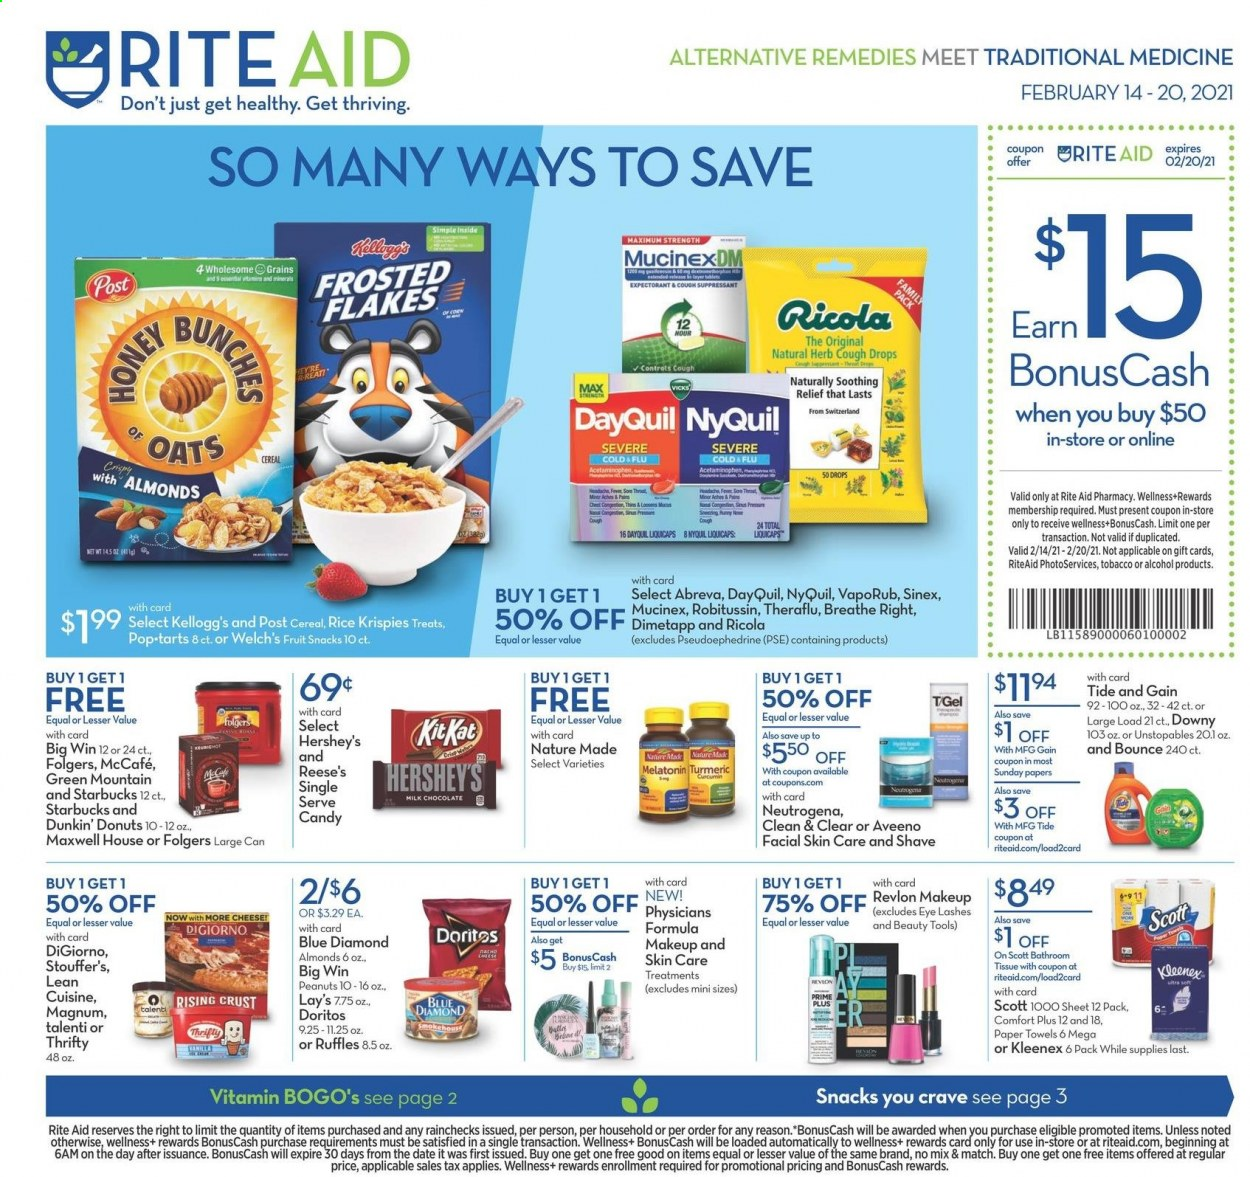 RITE AID Flyer - 02.14.2021 - 02.20.2021 - Sales products - Scott, Treats, Lean Cuisine, Welch's, Magnum, Reese's, Hershey's, Talenti Gelato, milk chocolate, ricola, chocolate, candy, Kellogg's, Pop-Tarts, fruit snacks, Doritos, Lay's, Ruffles, oats, cereals, Rice Krispies, Frosted Flakes, turmeric, herbs, almonds, peanuts, Blue Diamond, Maxwell House, Starbucks, Folgers, McCafe, Dunkin' Donuts, Green Mountain, alcohol, Aveeno, bath tissue, Kleenex, tissues, kitchen towels, paper towels, Gain, Downy, Tide, Unstopables, Bounce, Abreva, Neutrogena, Clean & Clear, Revlon, Brite, makeup, Bunches, DayQuil, Dimetapp, Melatonin, Mucinex, Nature Made, Robitussin, Theraflu, NyQuil, VapoRub, cough drops, Sinex, donut. Page 1.